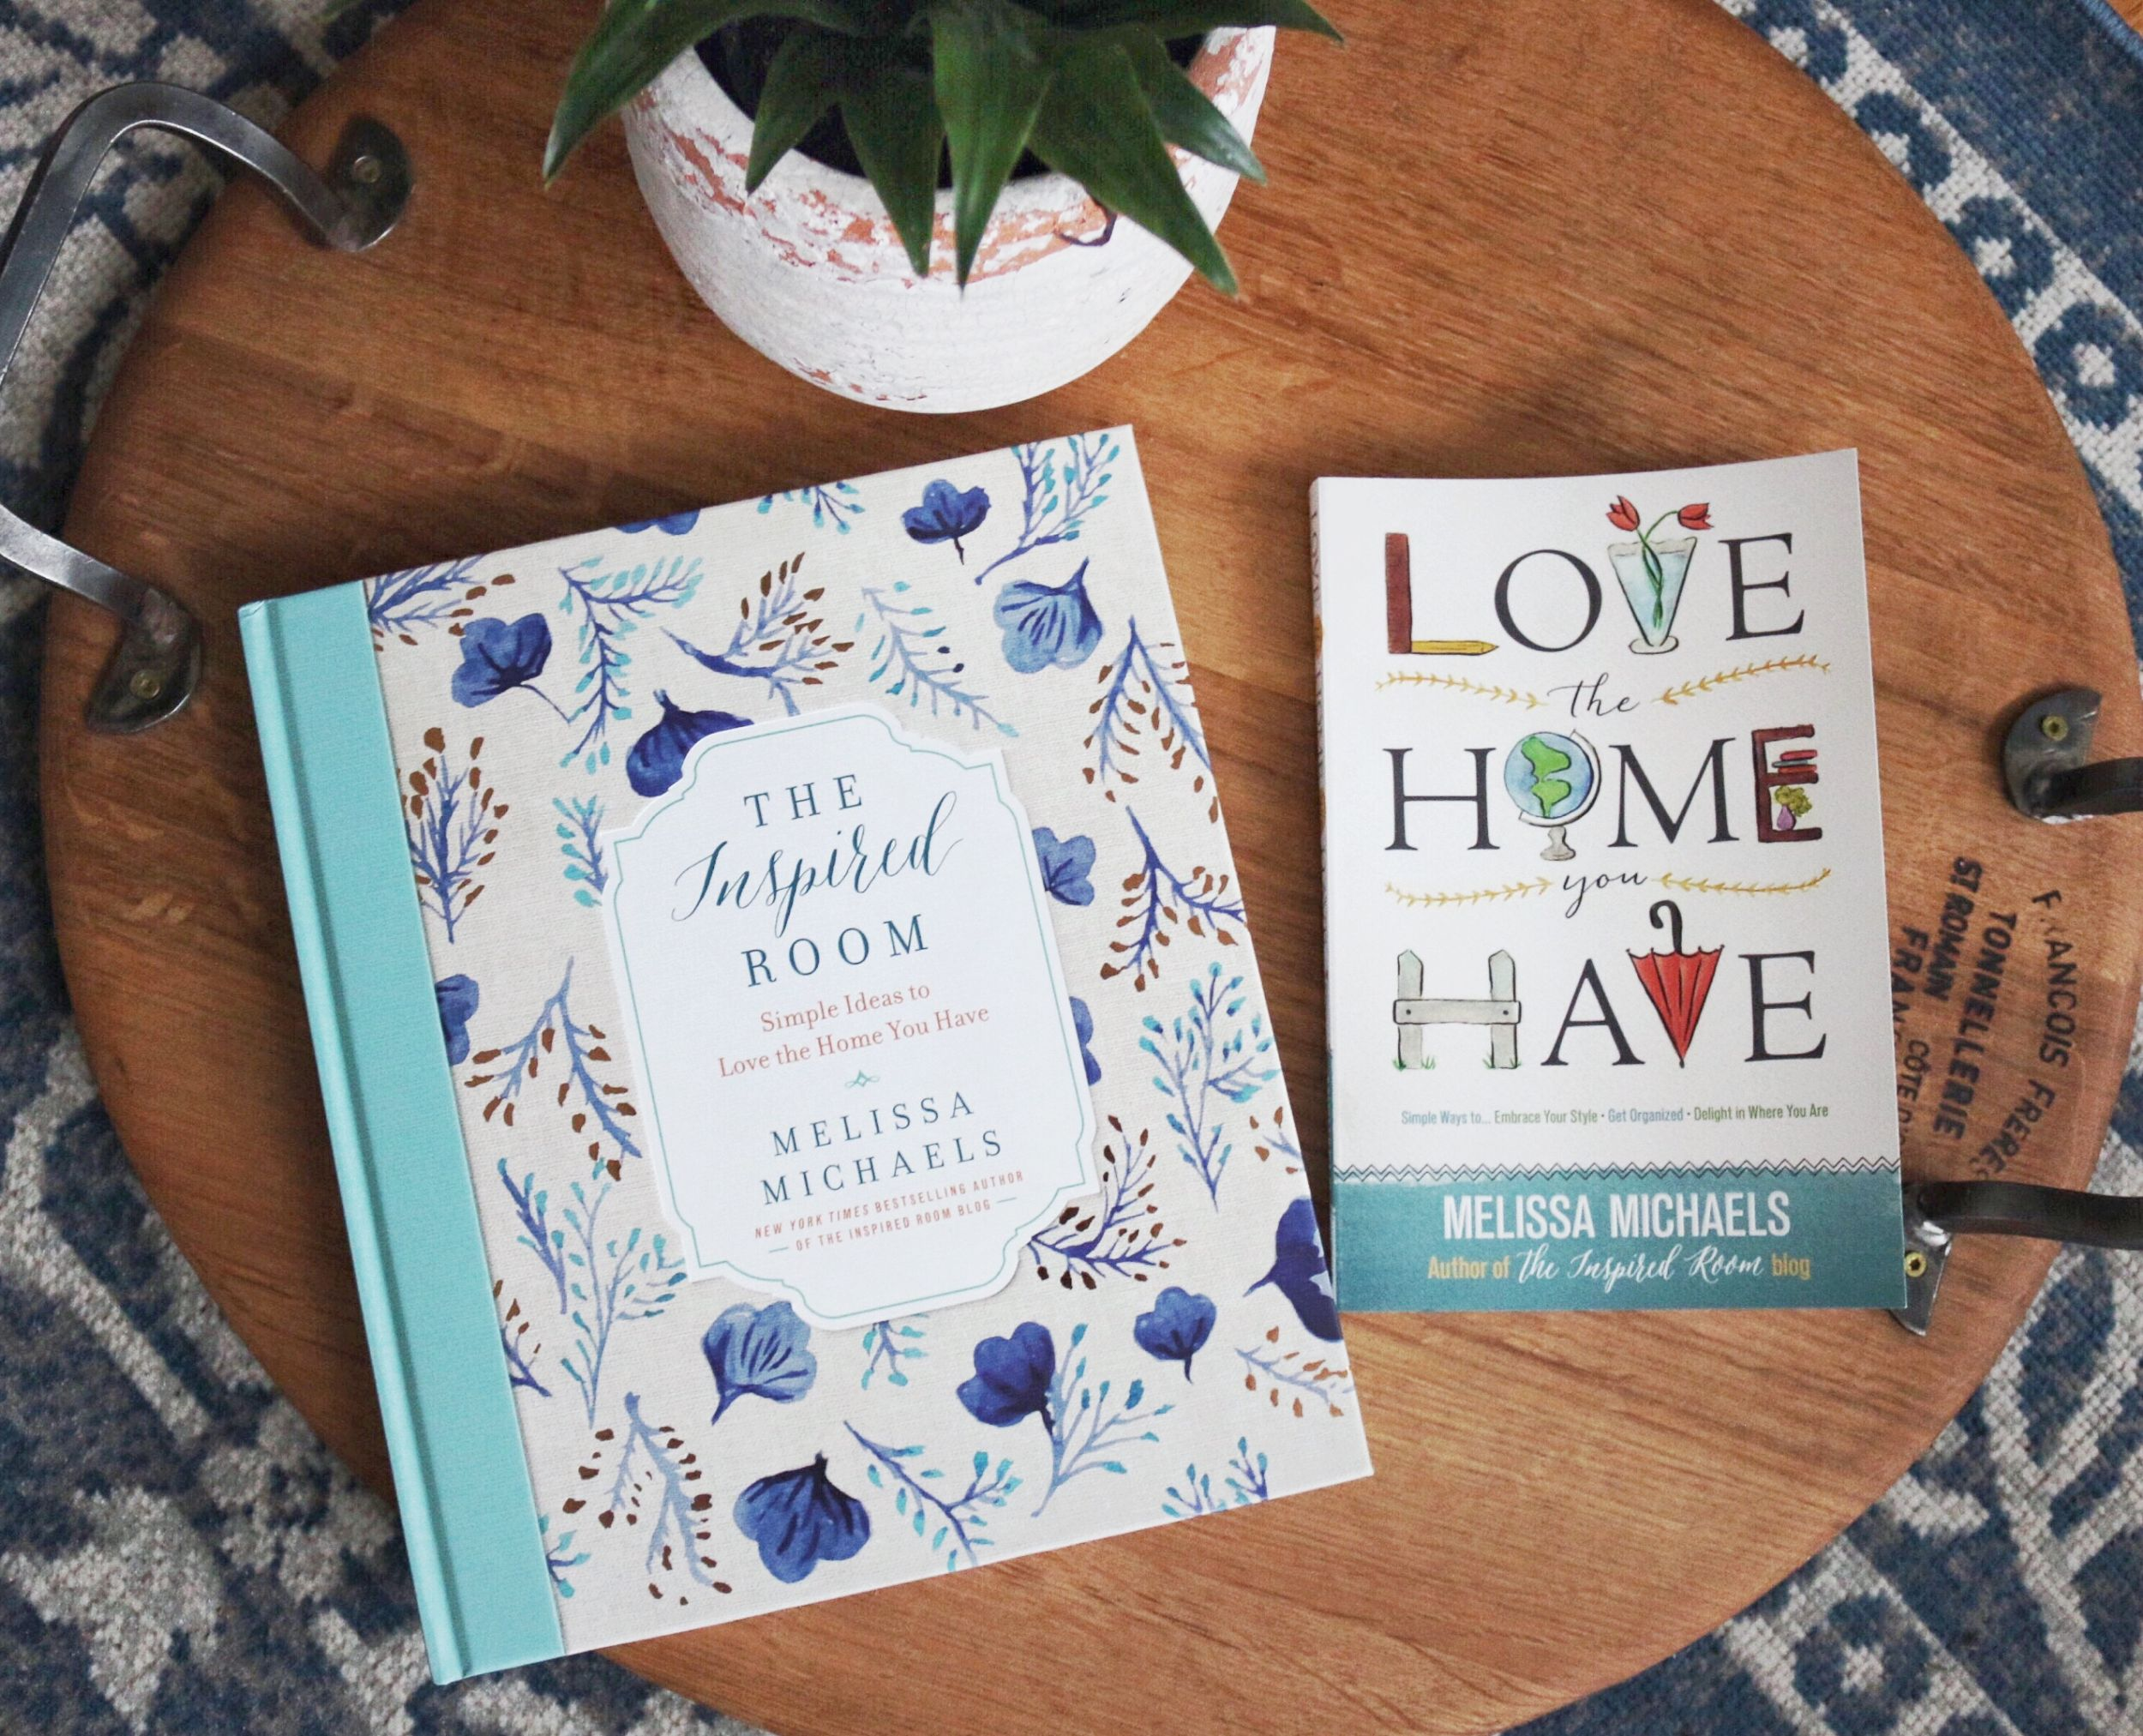 The Inspired Room and Love the Home You Have